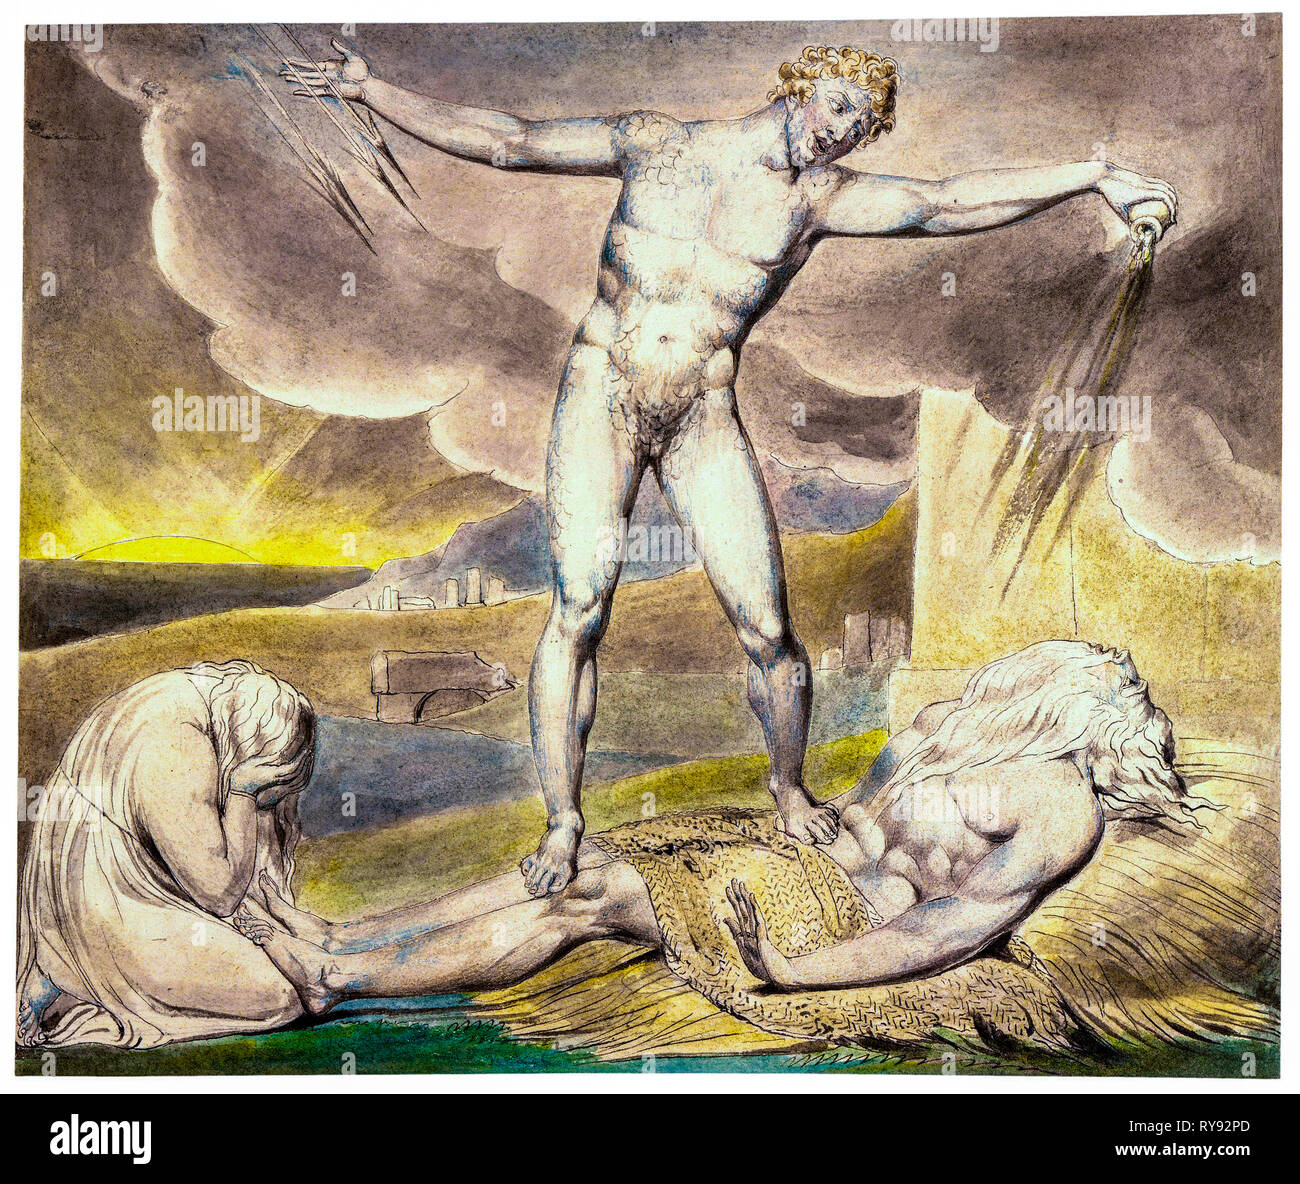 Satan Smiting Job with Boils, painting by William Blake, 1805 - Stock Image